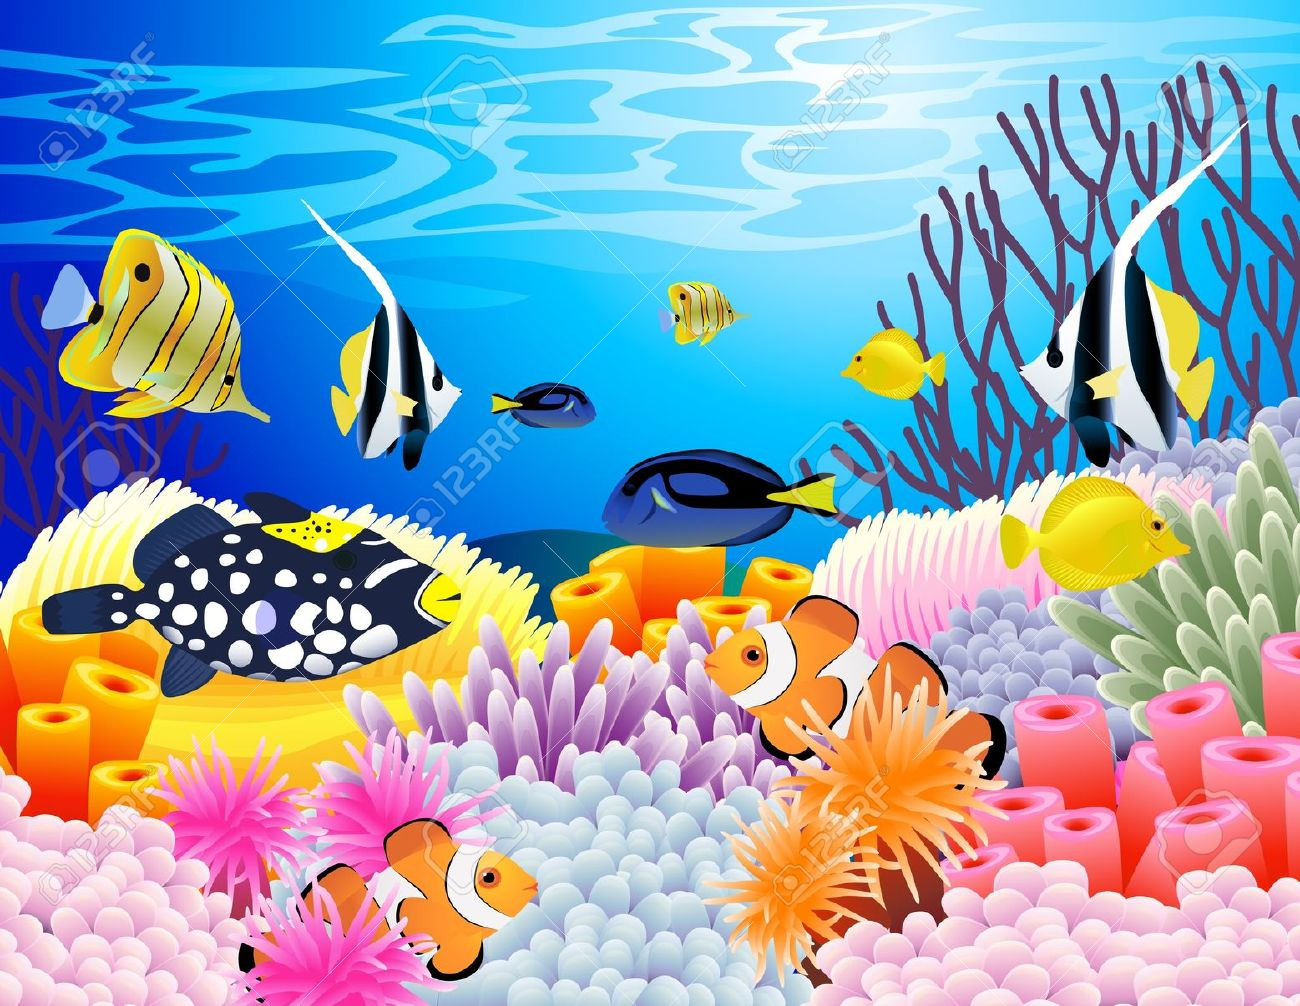 Under the sea clipart background 10 » Clipart Station.